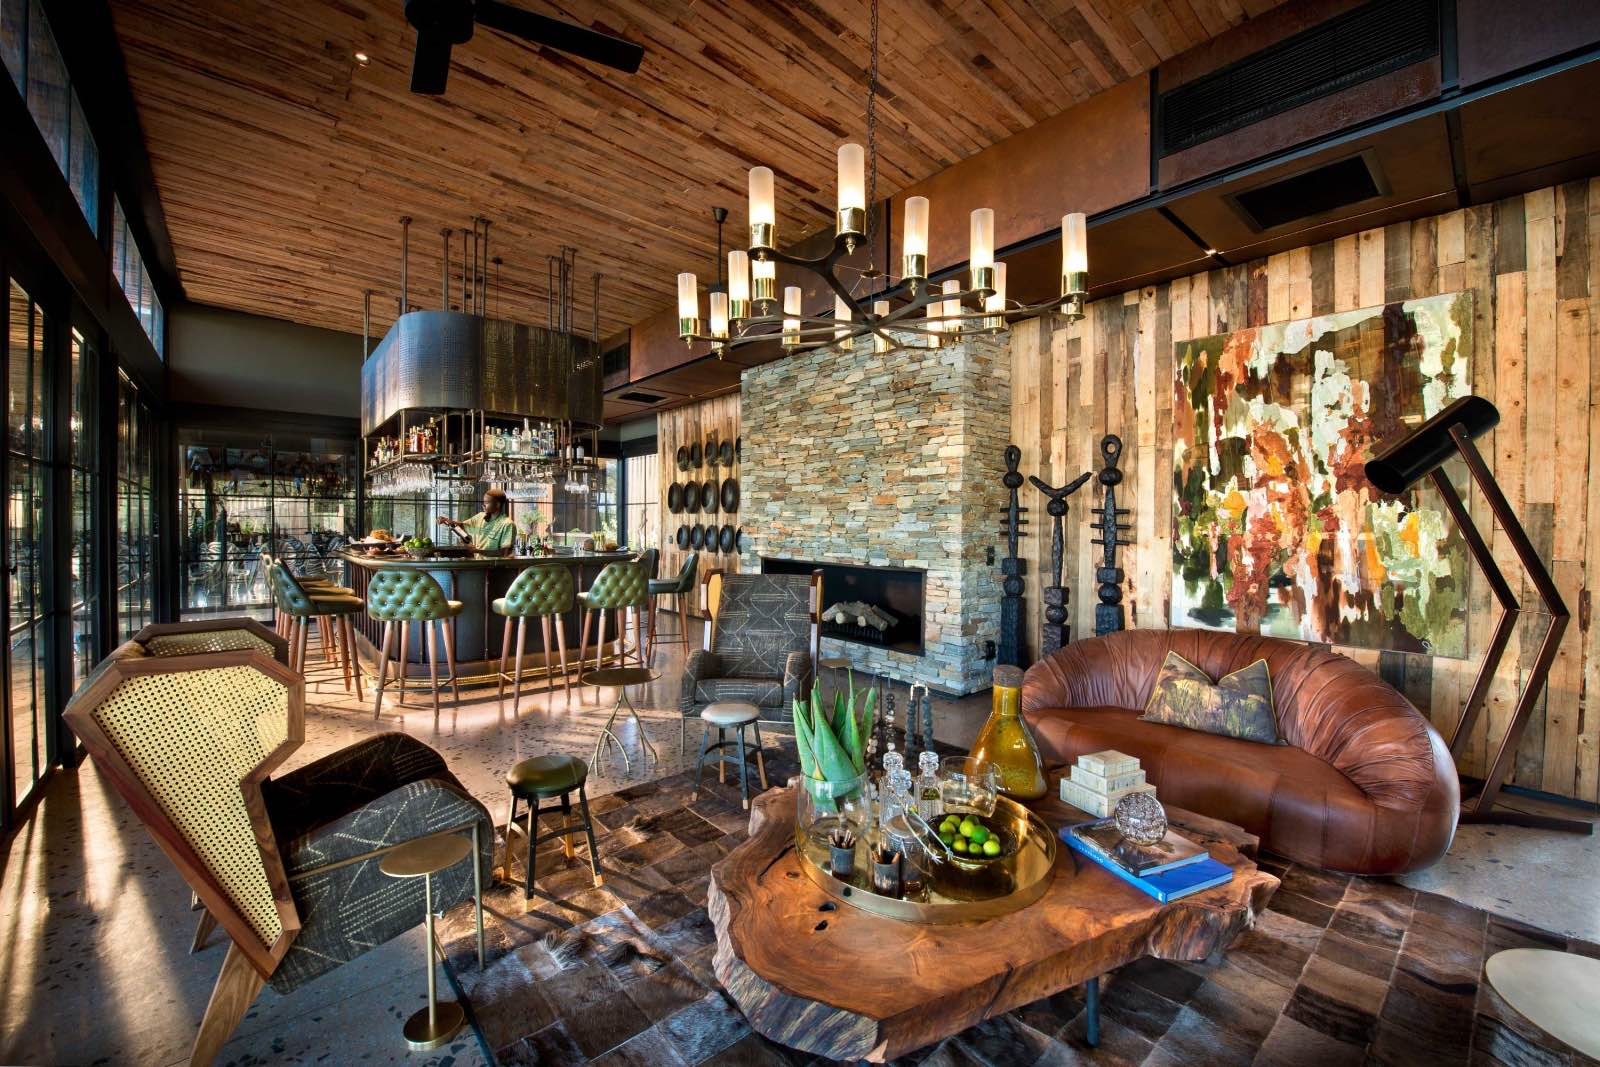 Bar and lounge with artistic, organic decor at Tengile River Lodge